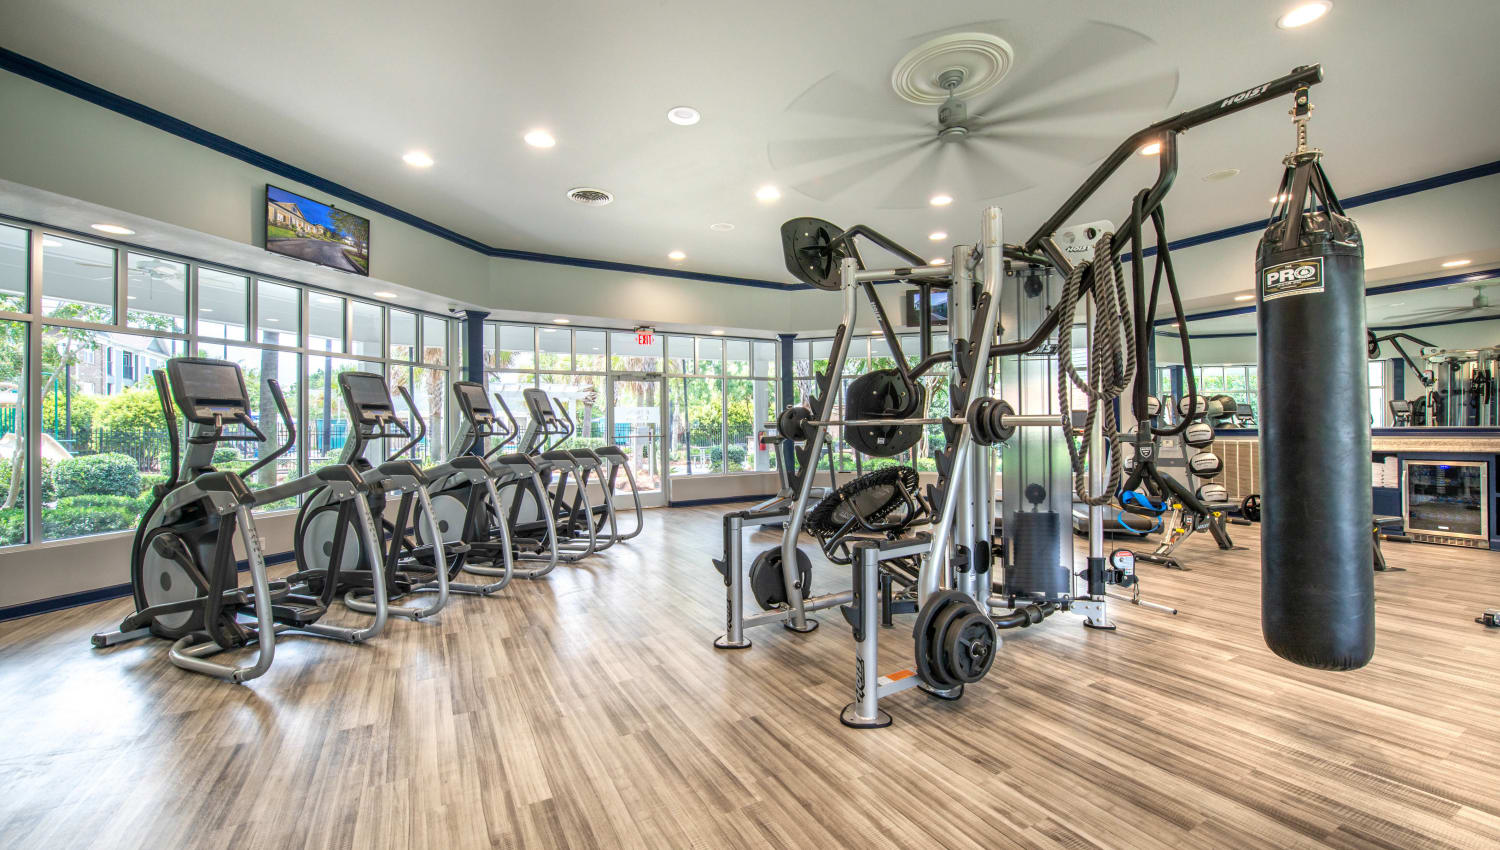 Ample equipment in the fitness center at Olympus Carrington in Pooler, Georgia